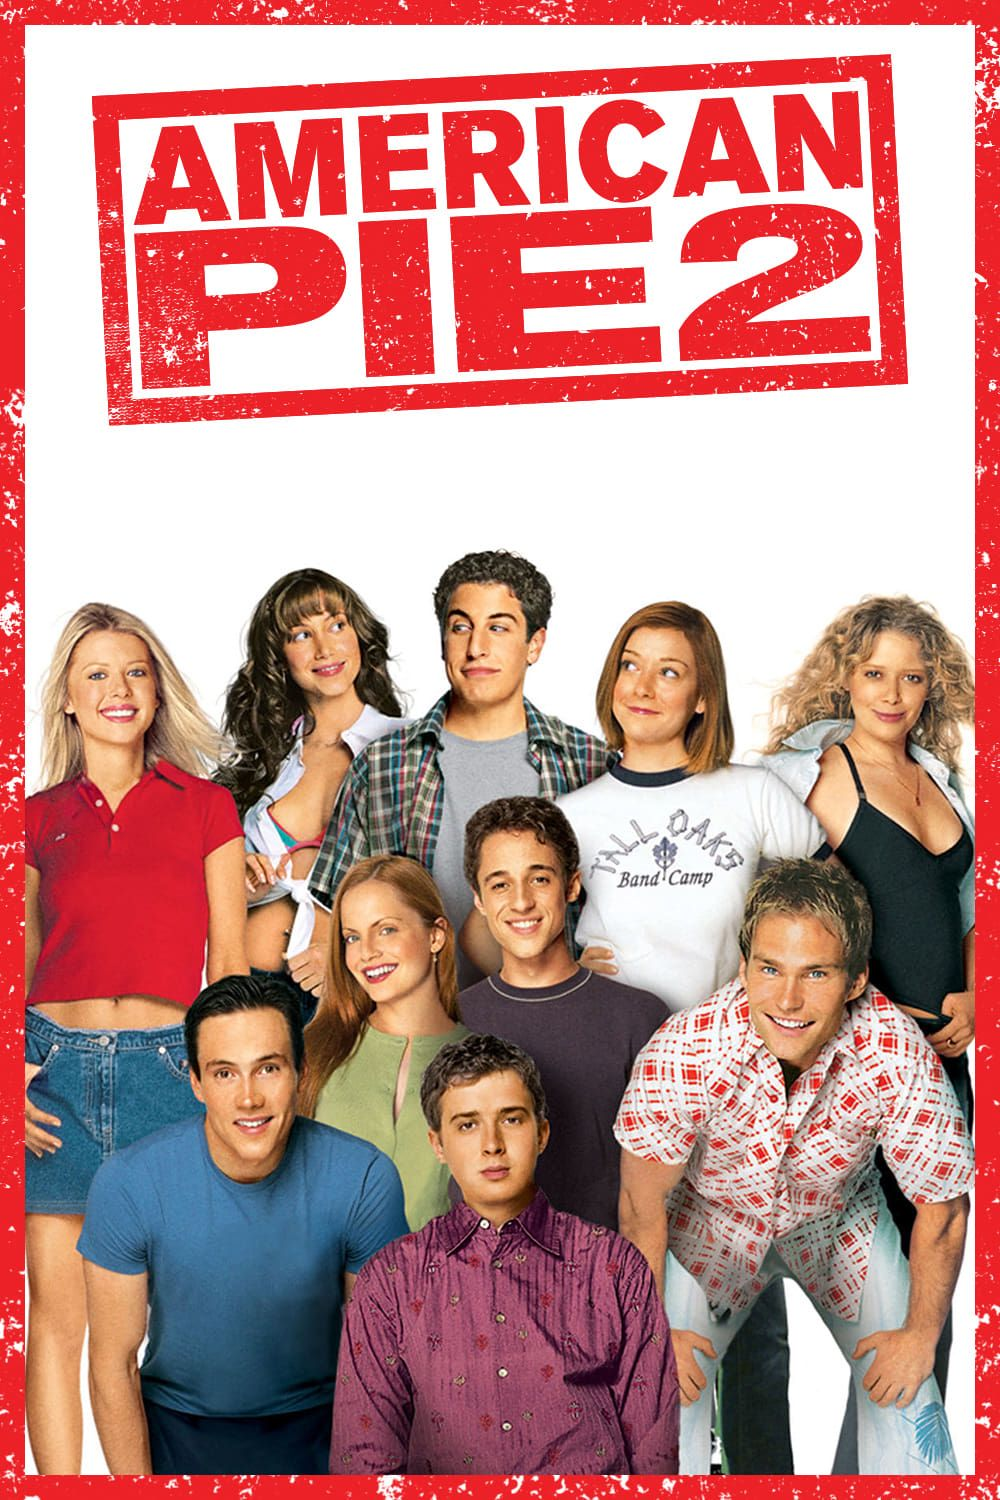 American Pie 2 Español american pie 2 (2001) synopsis : jim and his friends are now